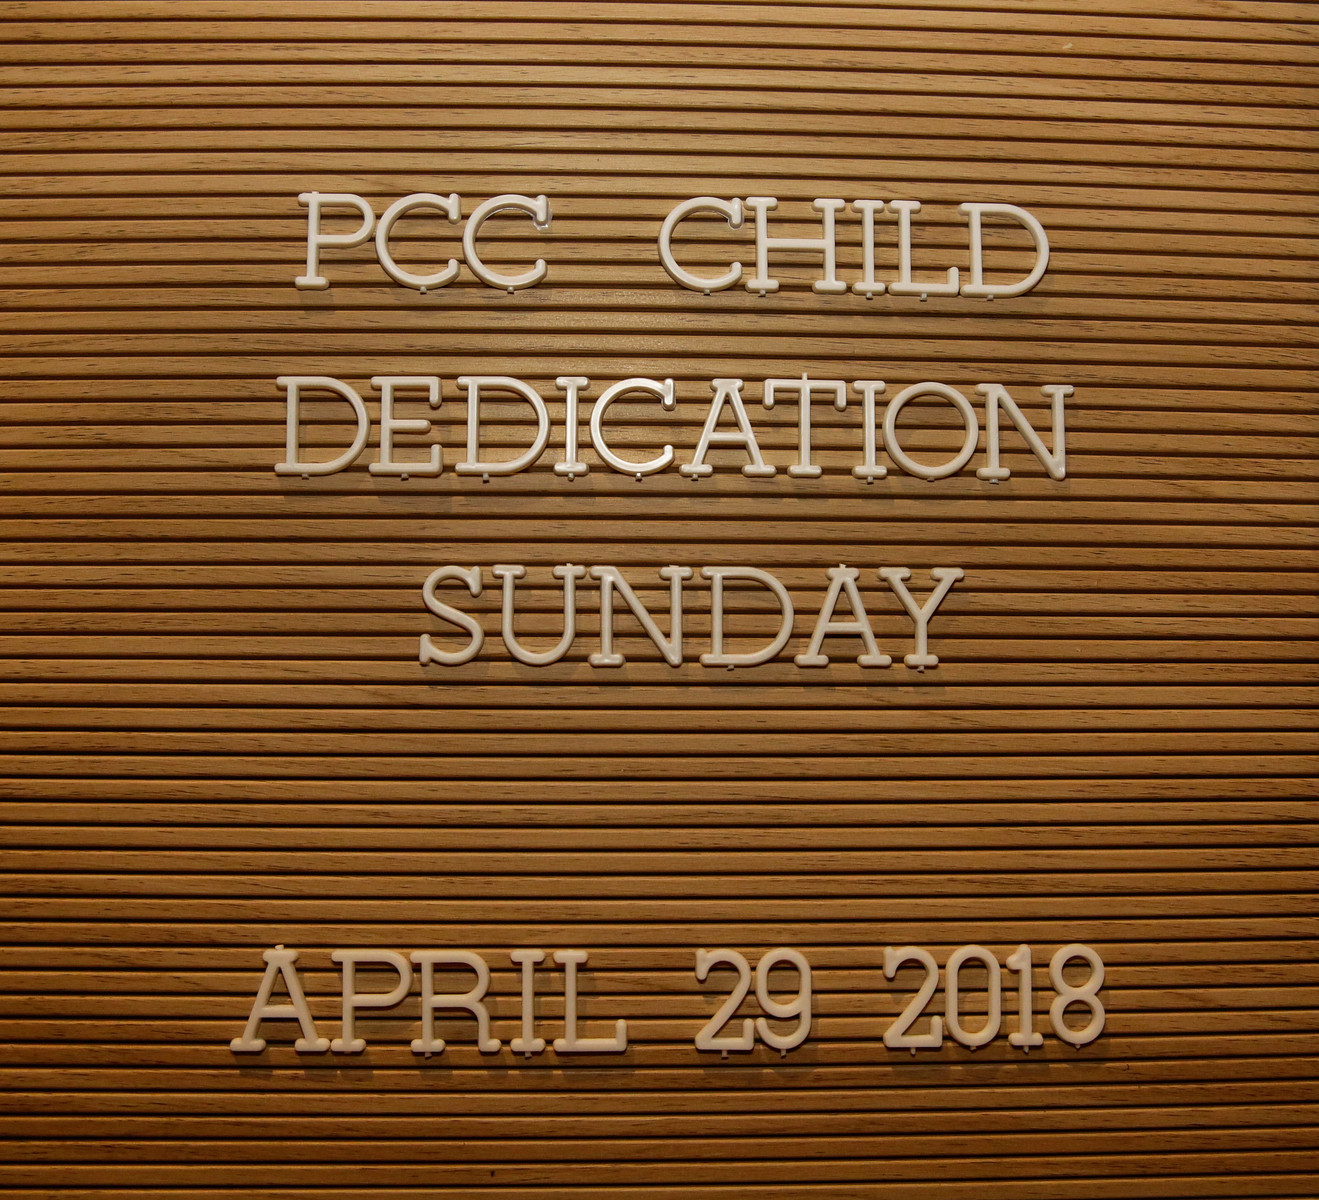 PCC Child Dedication 4-29-2018 by Annette Holloway Photography